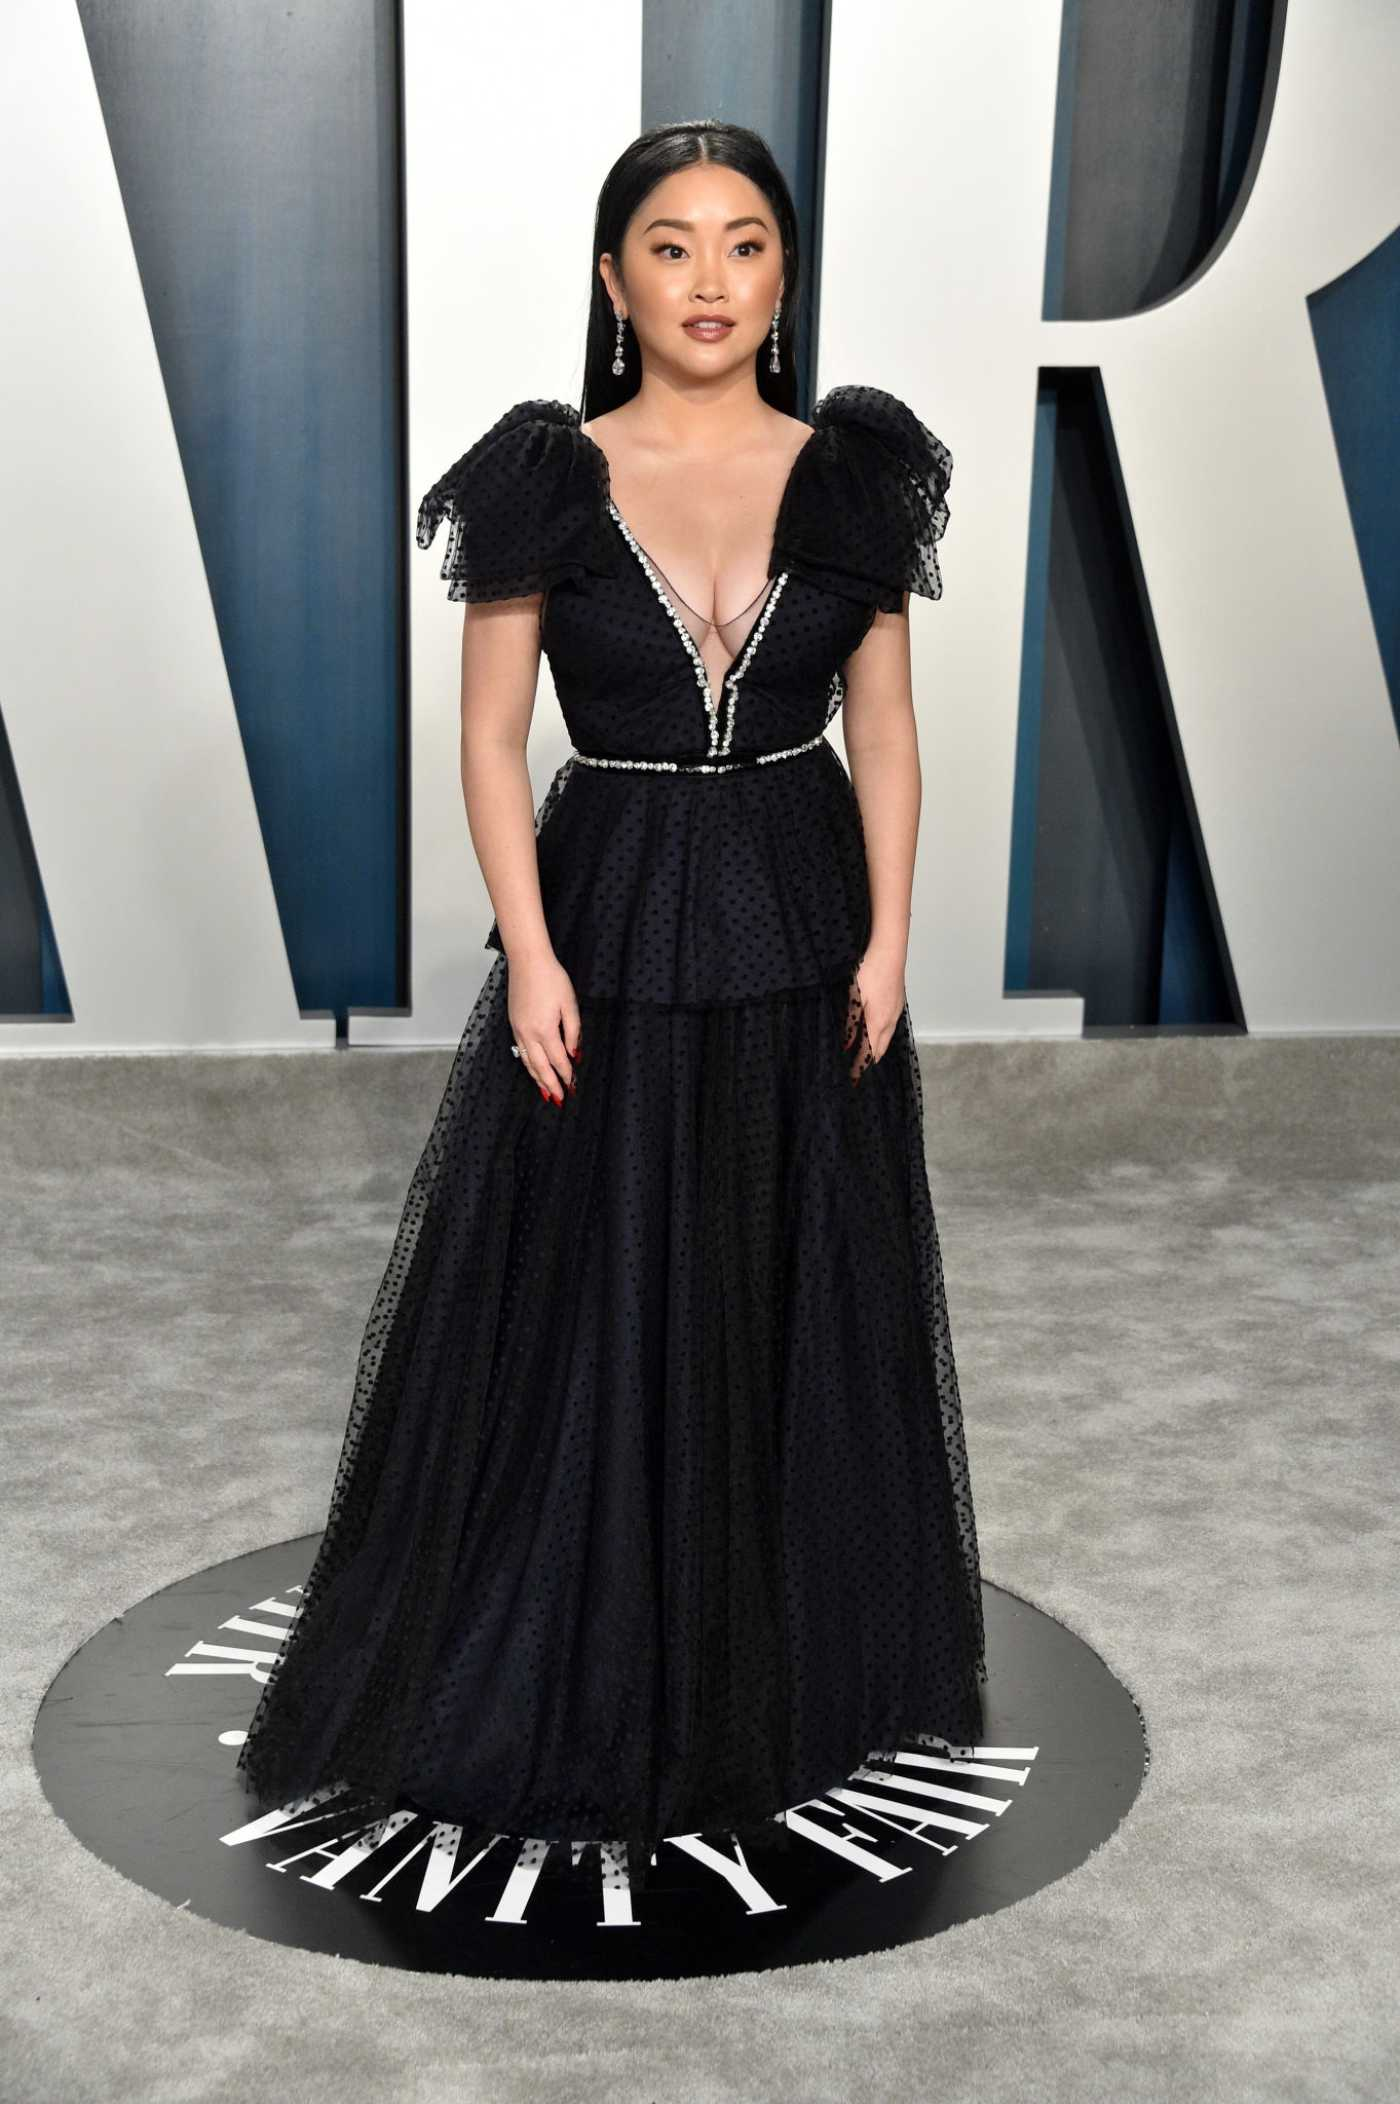 Lana Condor Attends the 92nd Academy Awards Vanity Fair Oscar Party in Beverly Hills 02/09/2020